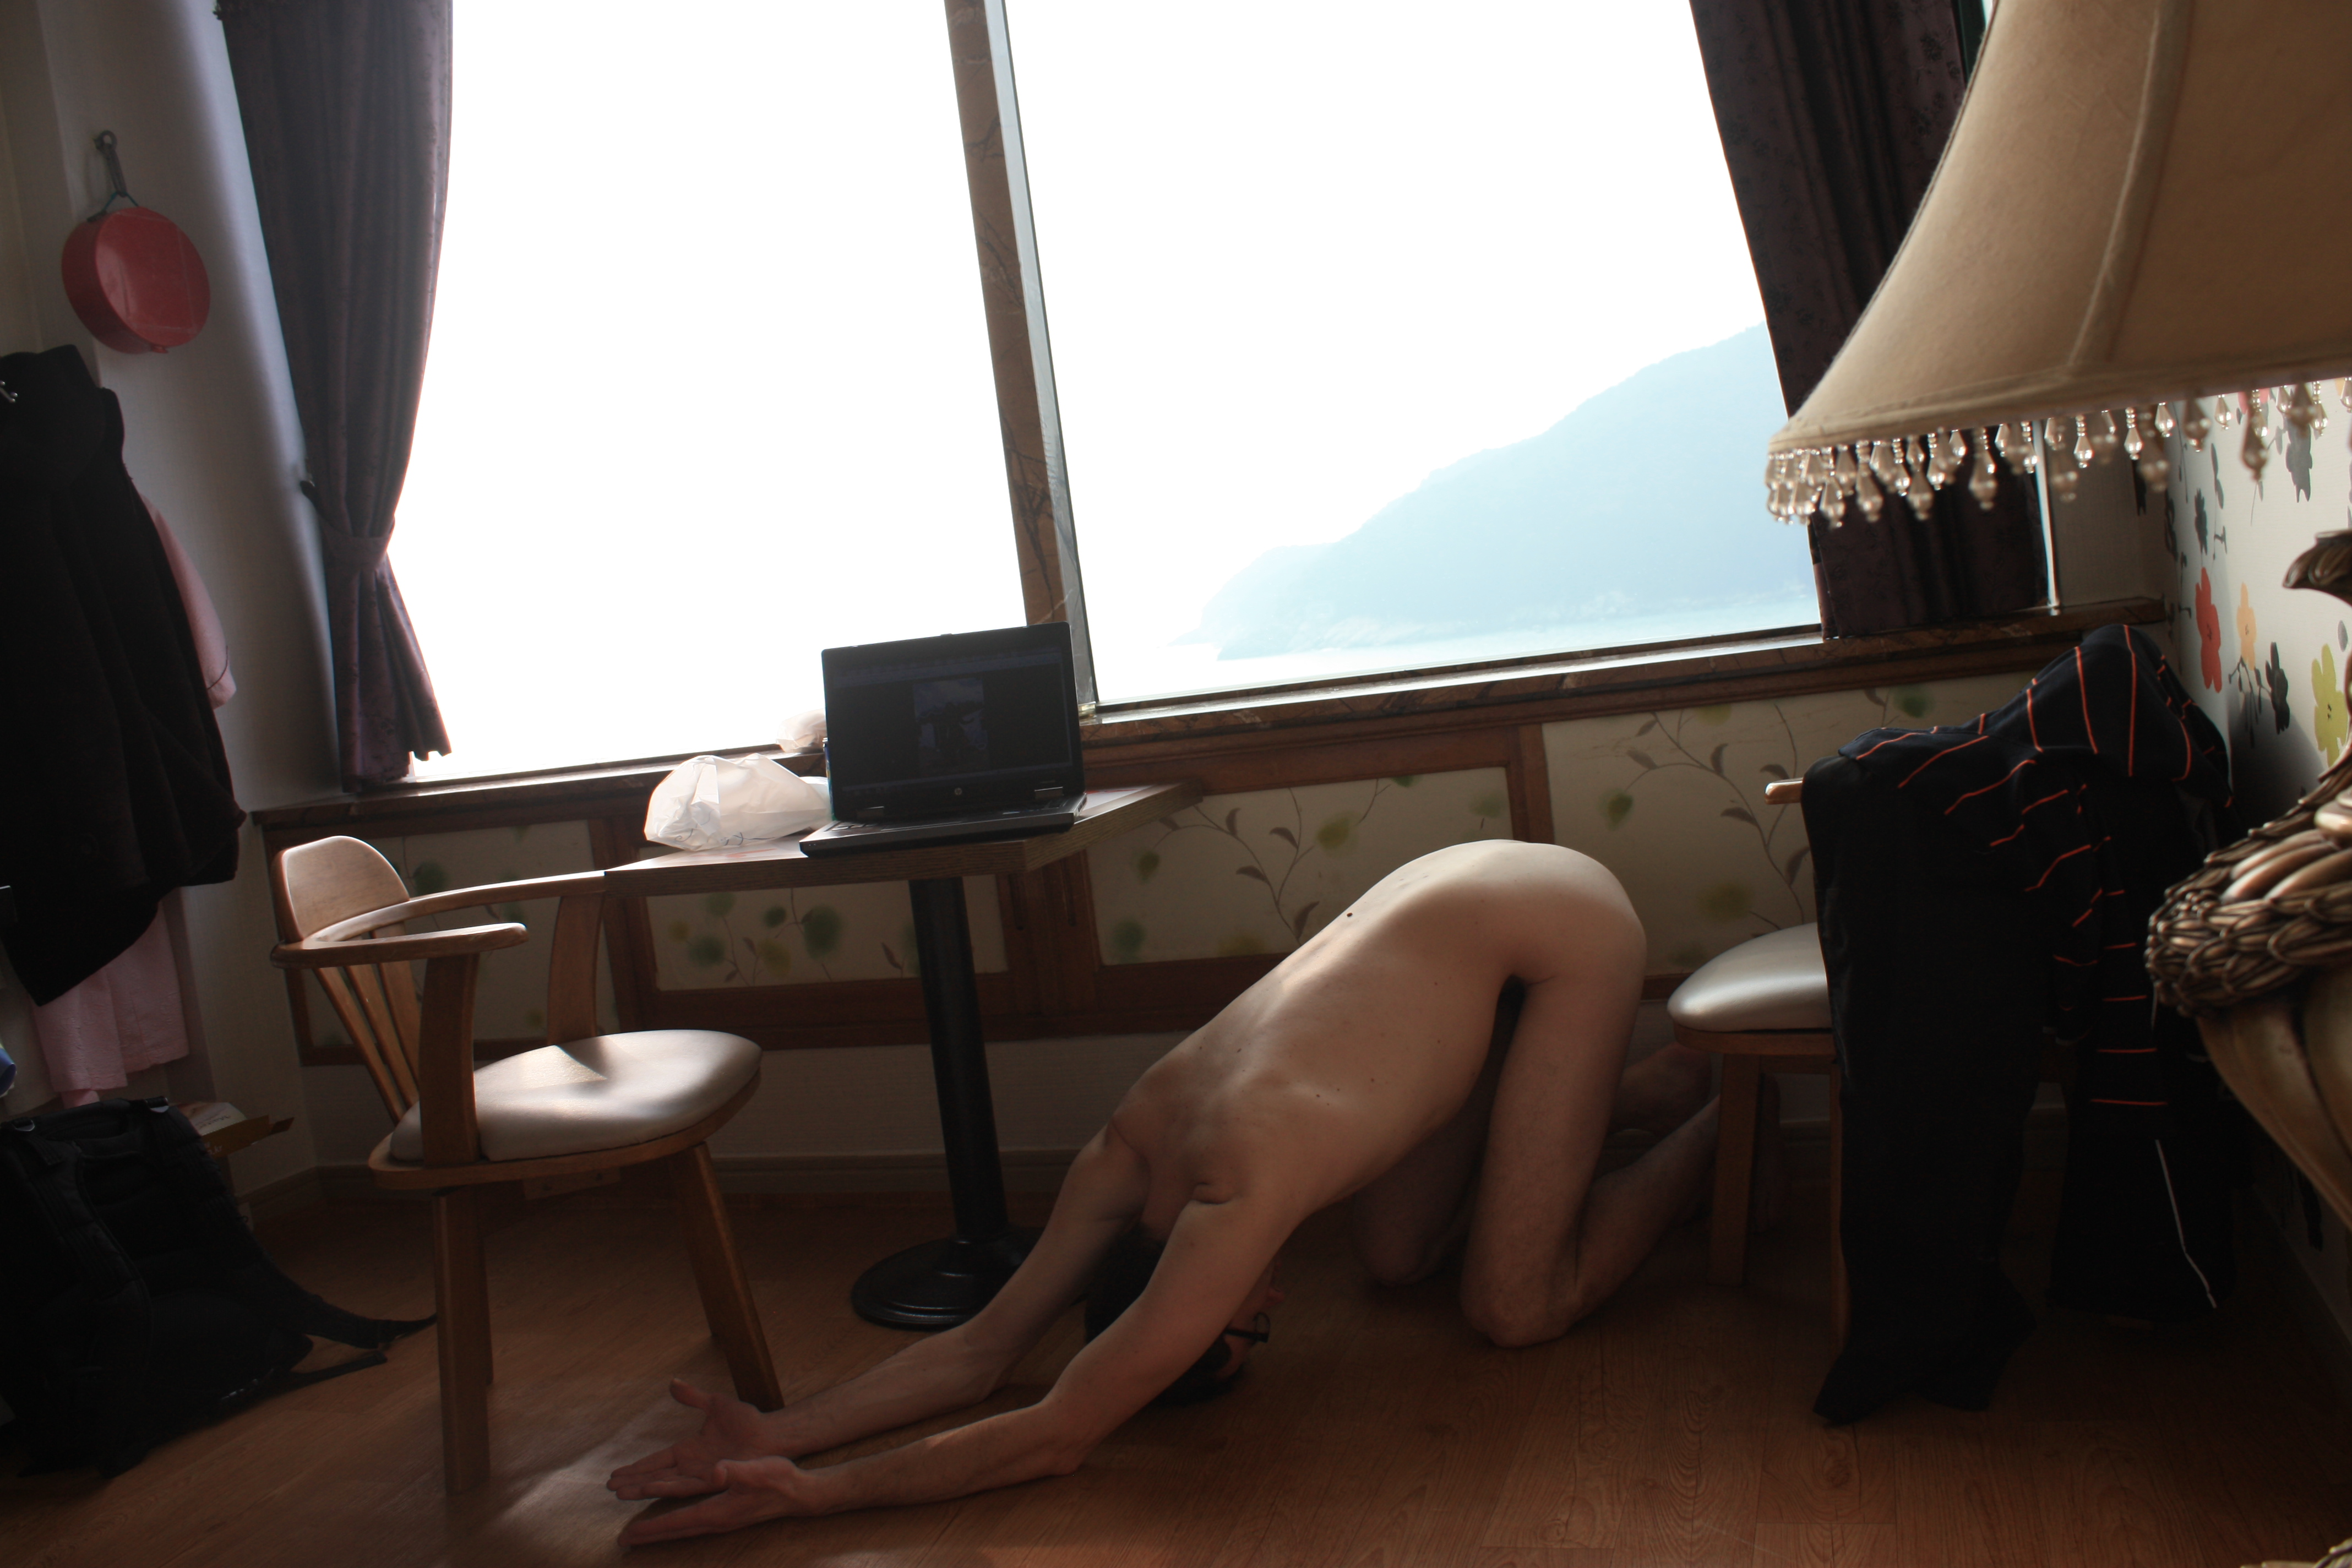 In his hotel room, slave performing the morning ritual